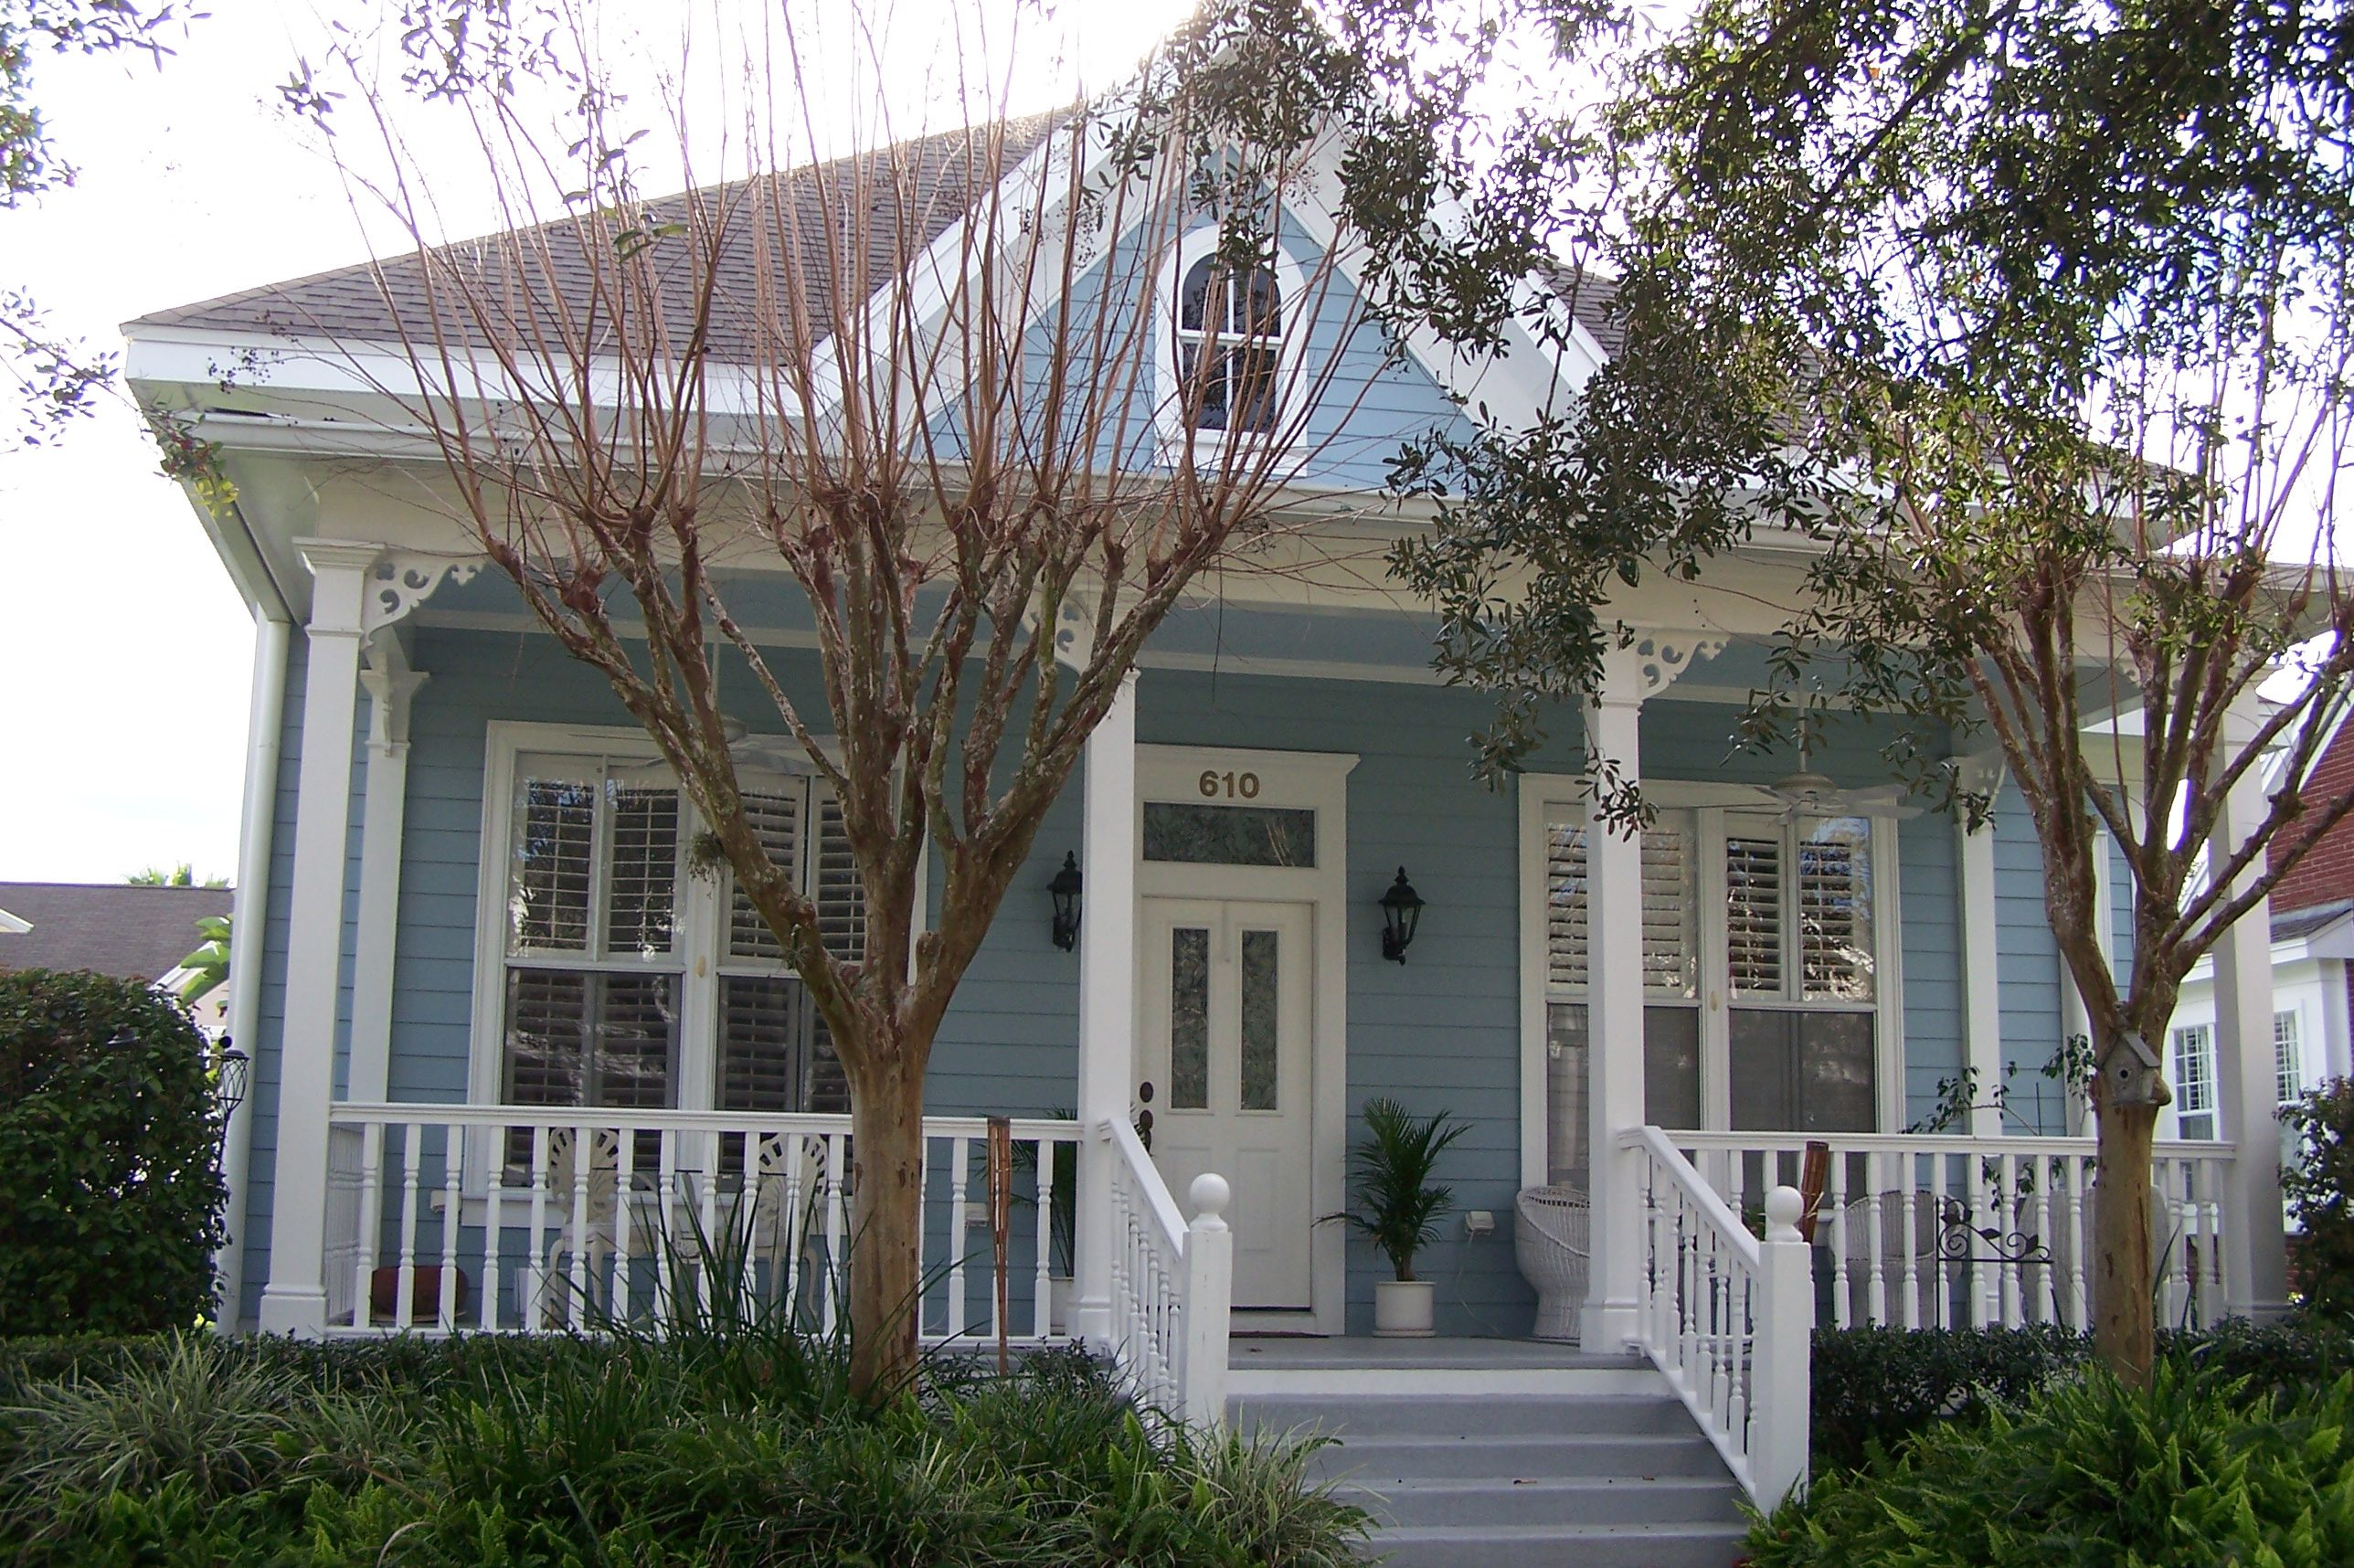 house with blue-siding and white trim, front porch with thin columns